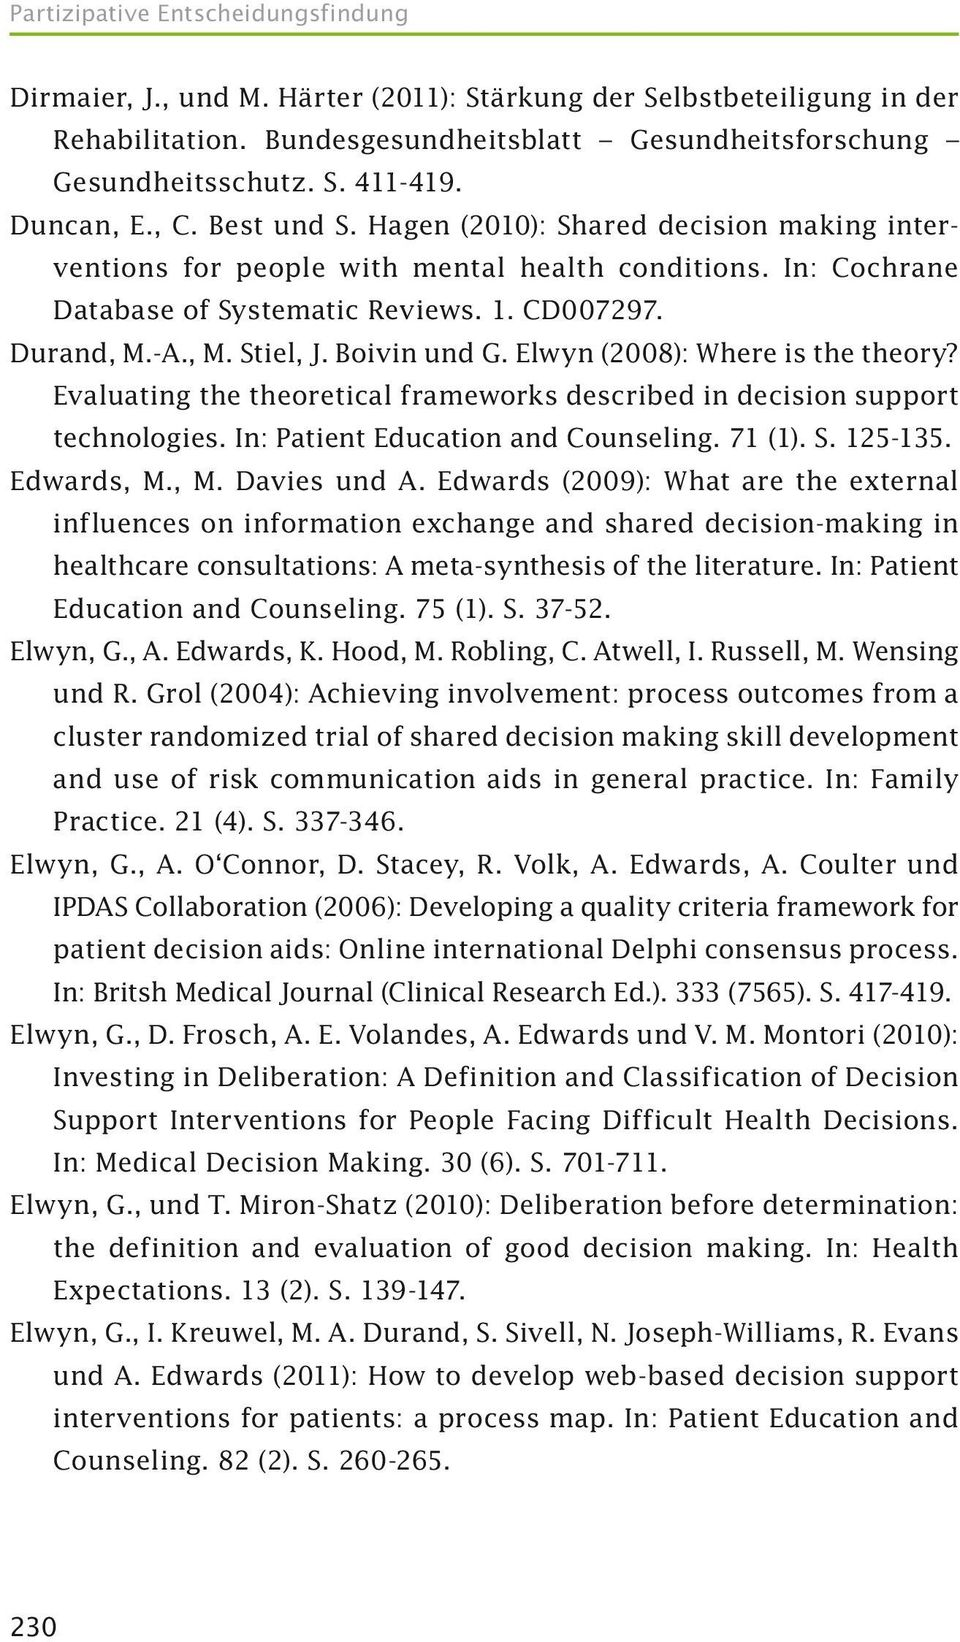 Elwyn (2008): Where is the theory? Evaluating the theoretical frameworks described in decision support technologies. In: Patient Education and Counseling. 71 (1). S. 125-135. Edwards, M., M. Davies und A.